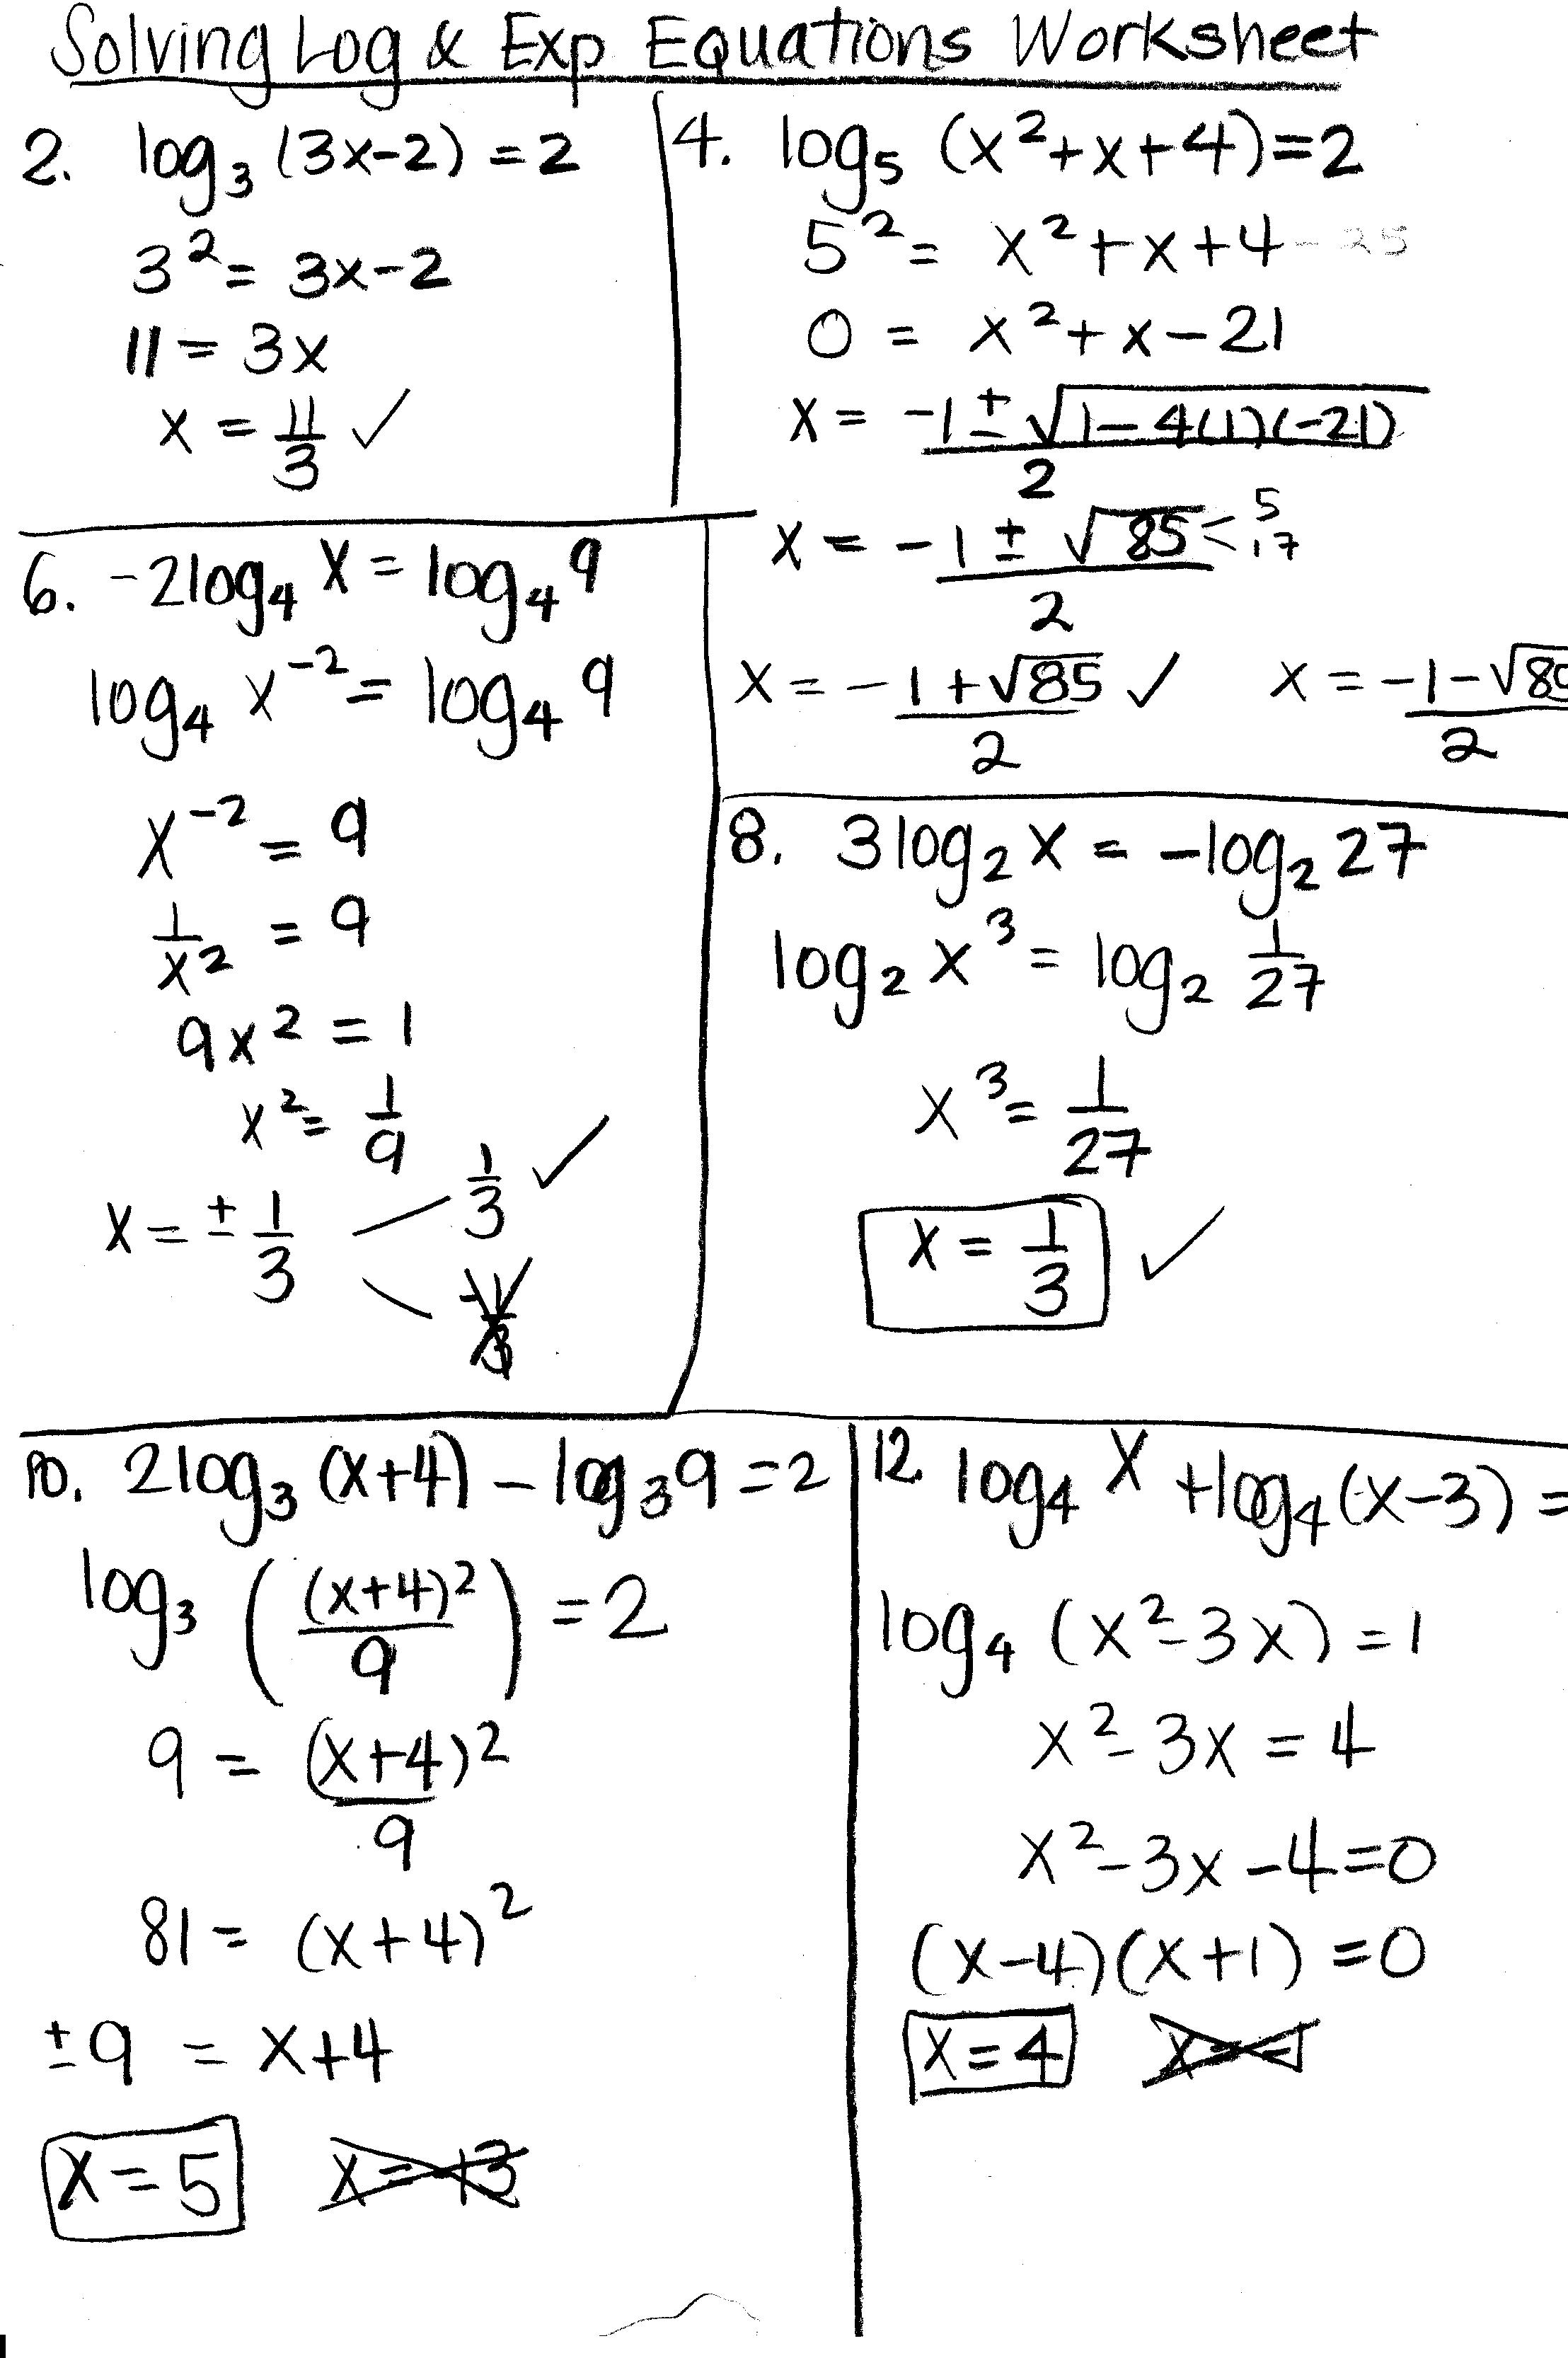 Worksheets Solving Exponential Equations Worksheet exponential equations worksheet with answers free worksheets algebra 2 and logarithmic functions